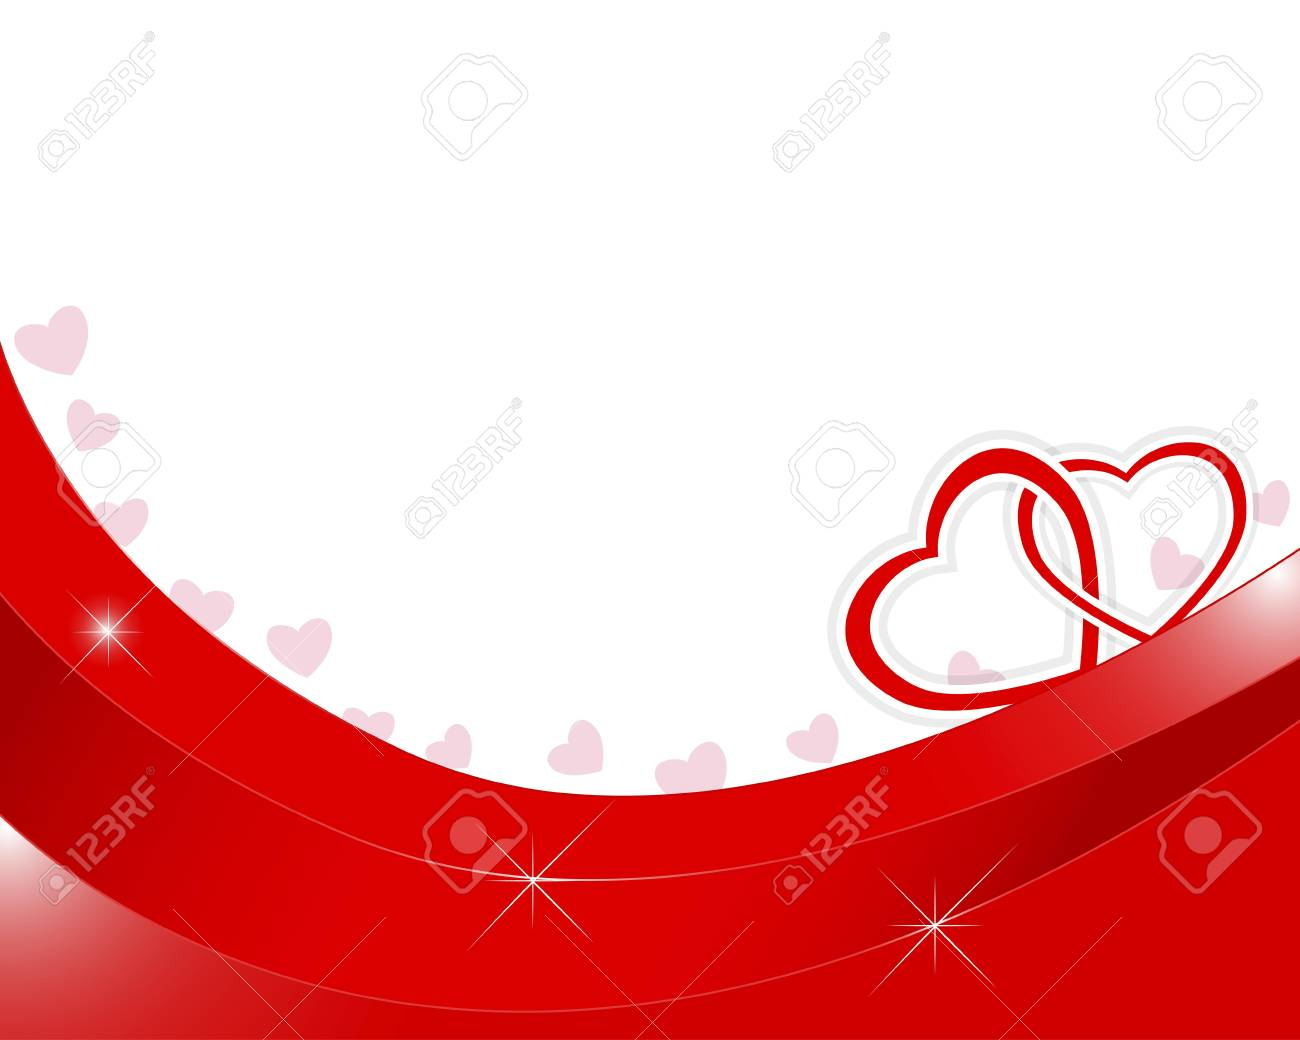 Valentines day background with two paper hearts entwined. Stock Vector - 17533426